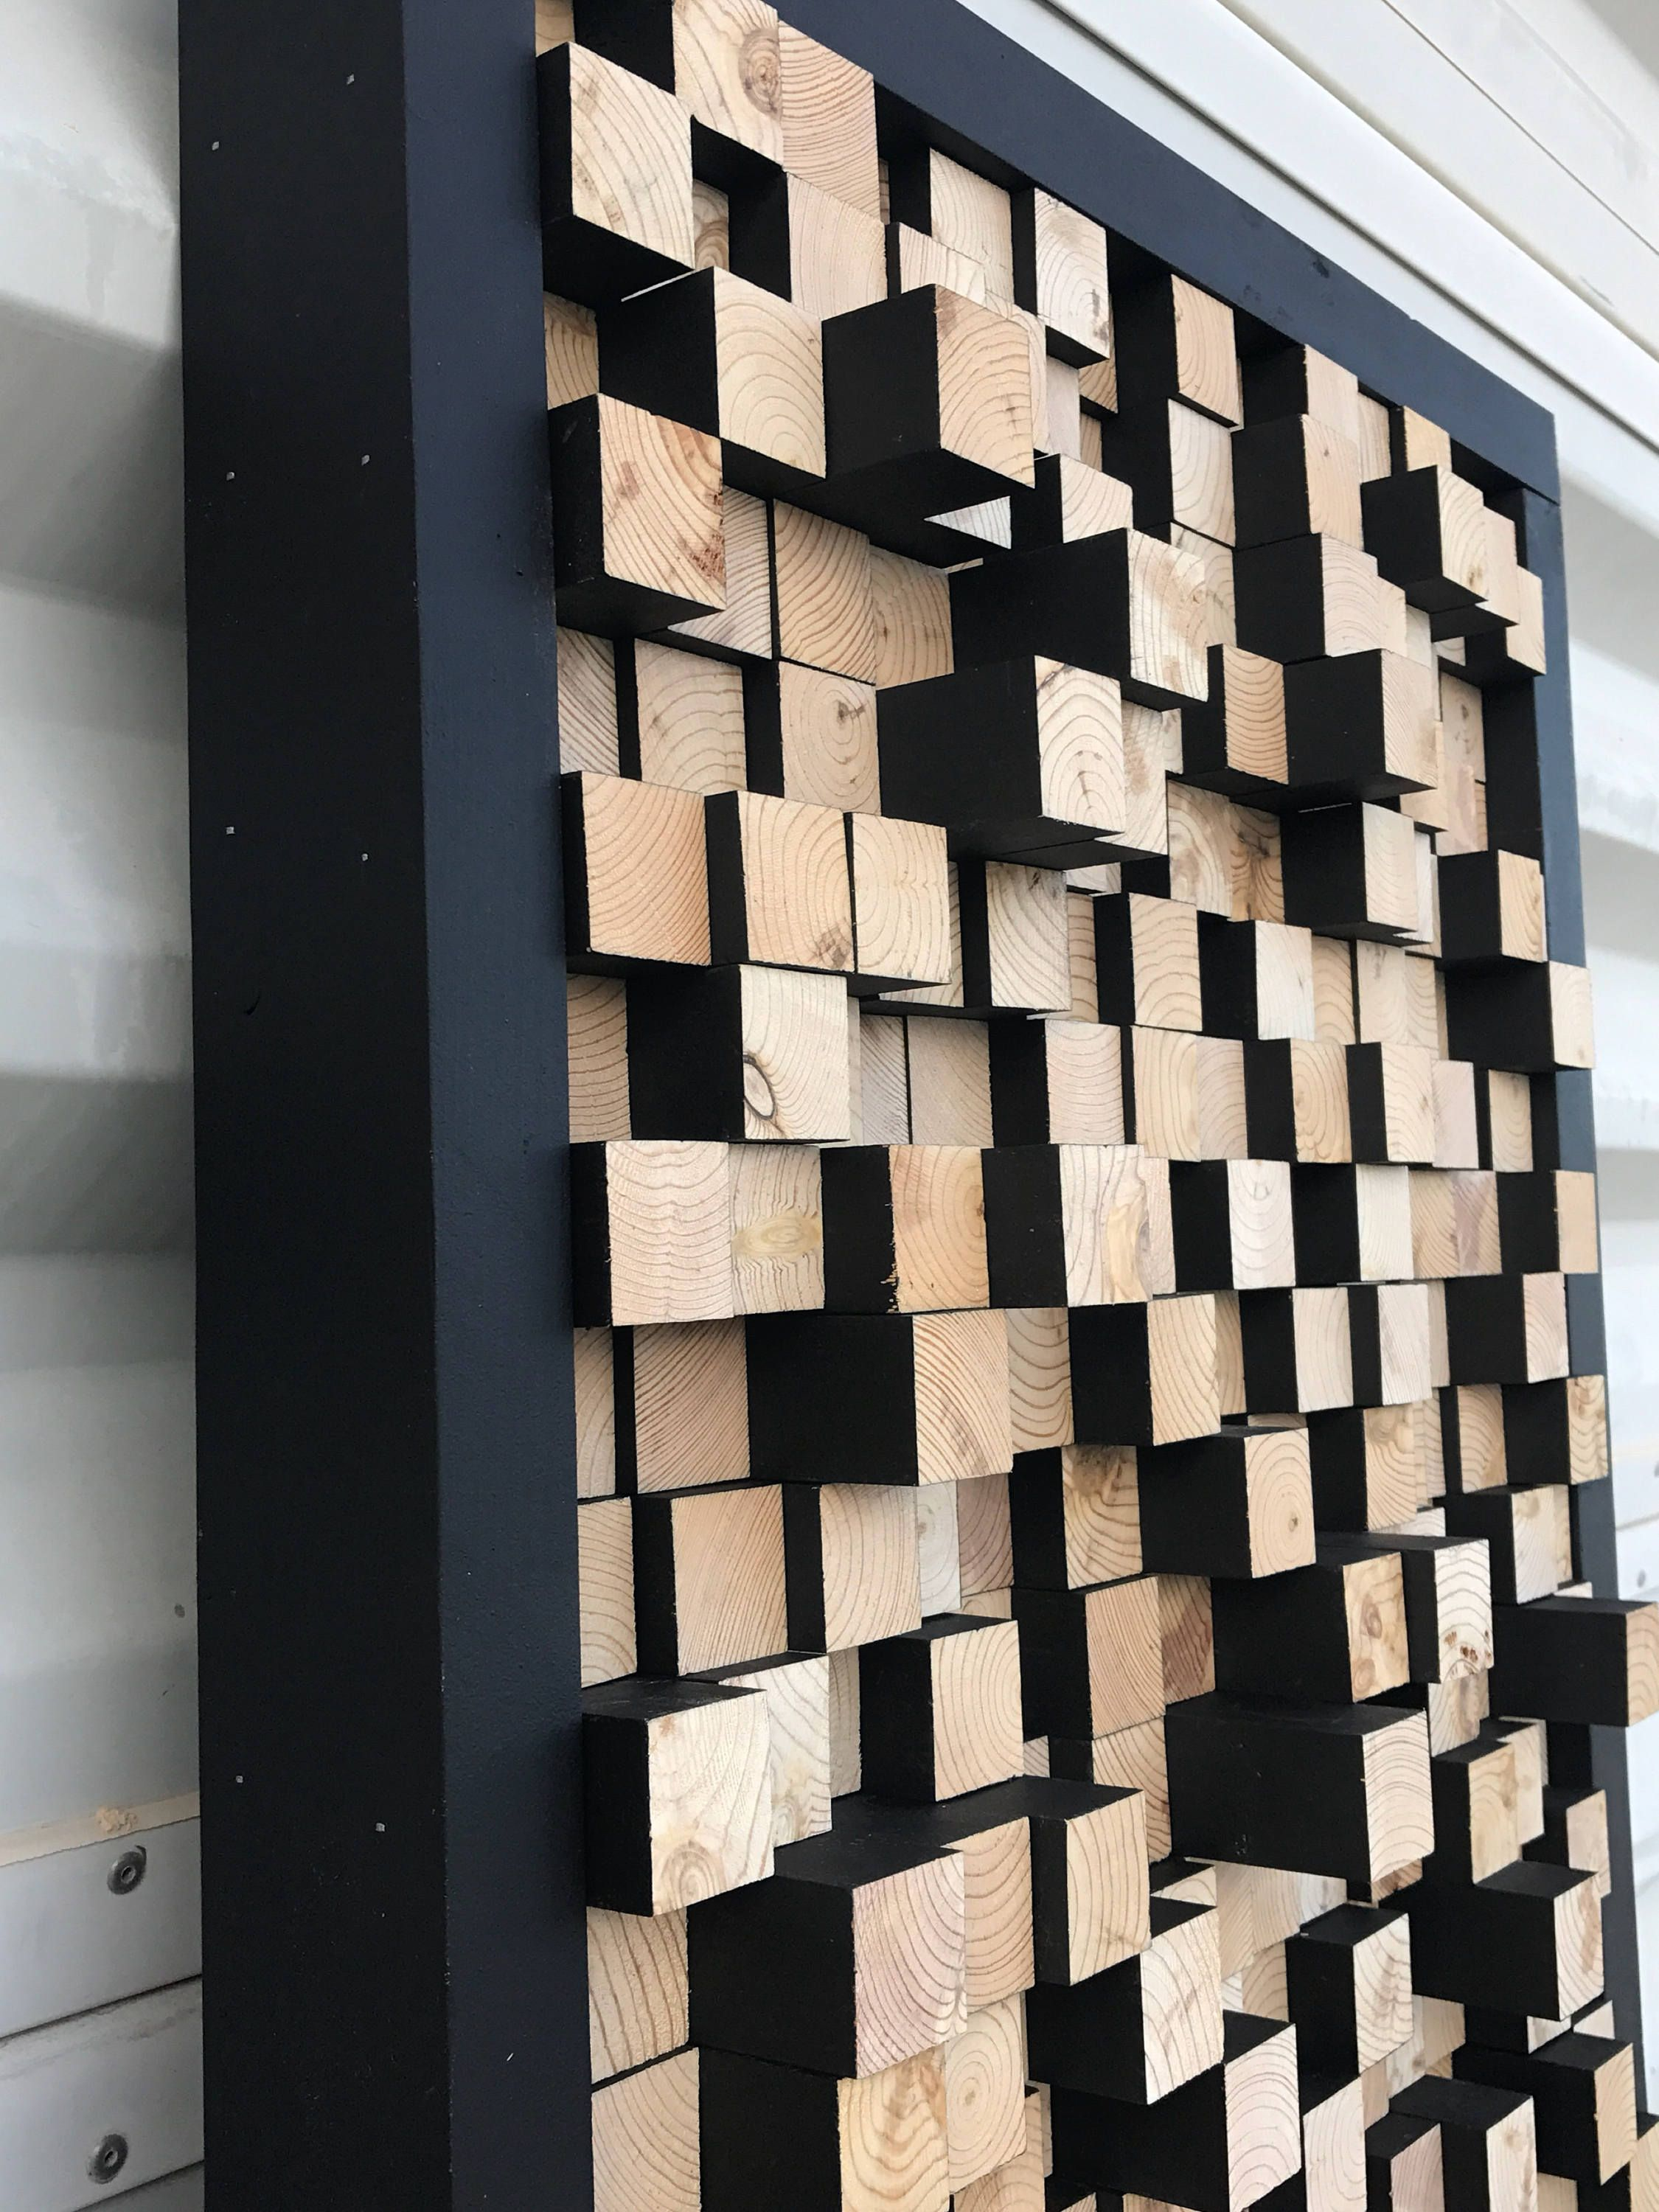 Studio Wooden Sound Diffuser Acoustic Panel Soundproofing Proof Pixel Art Multi Colored Wood Art 3d Art Wooden Art In 2021 Wooden Art Acoustic Panels Wood Art